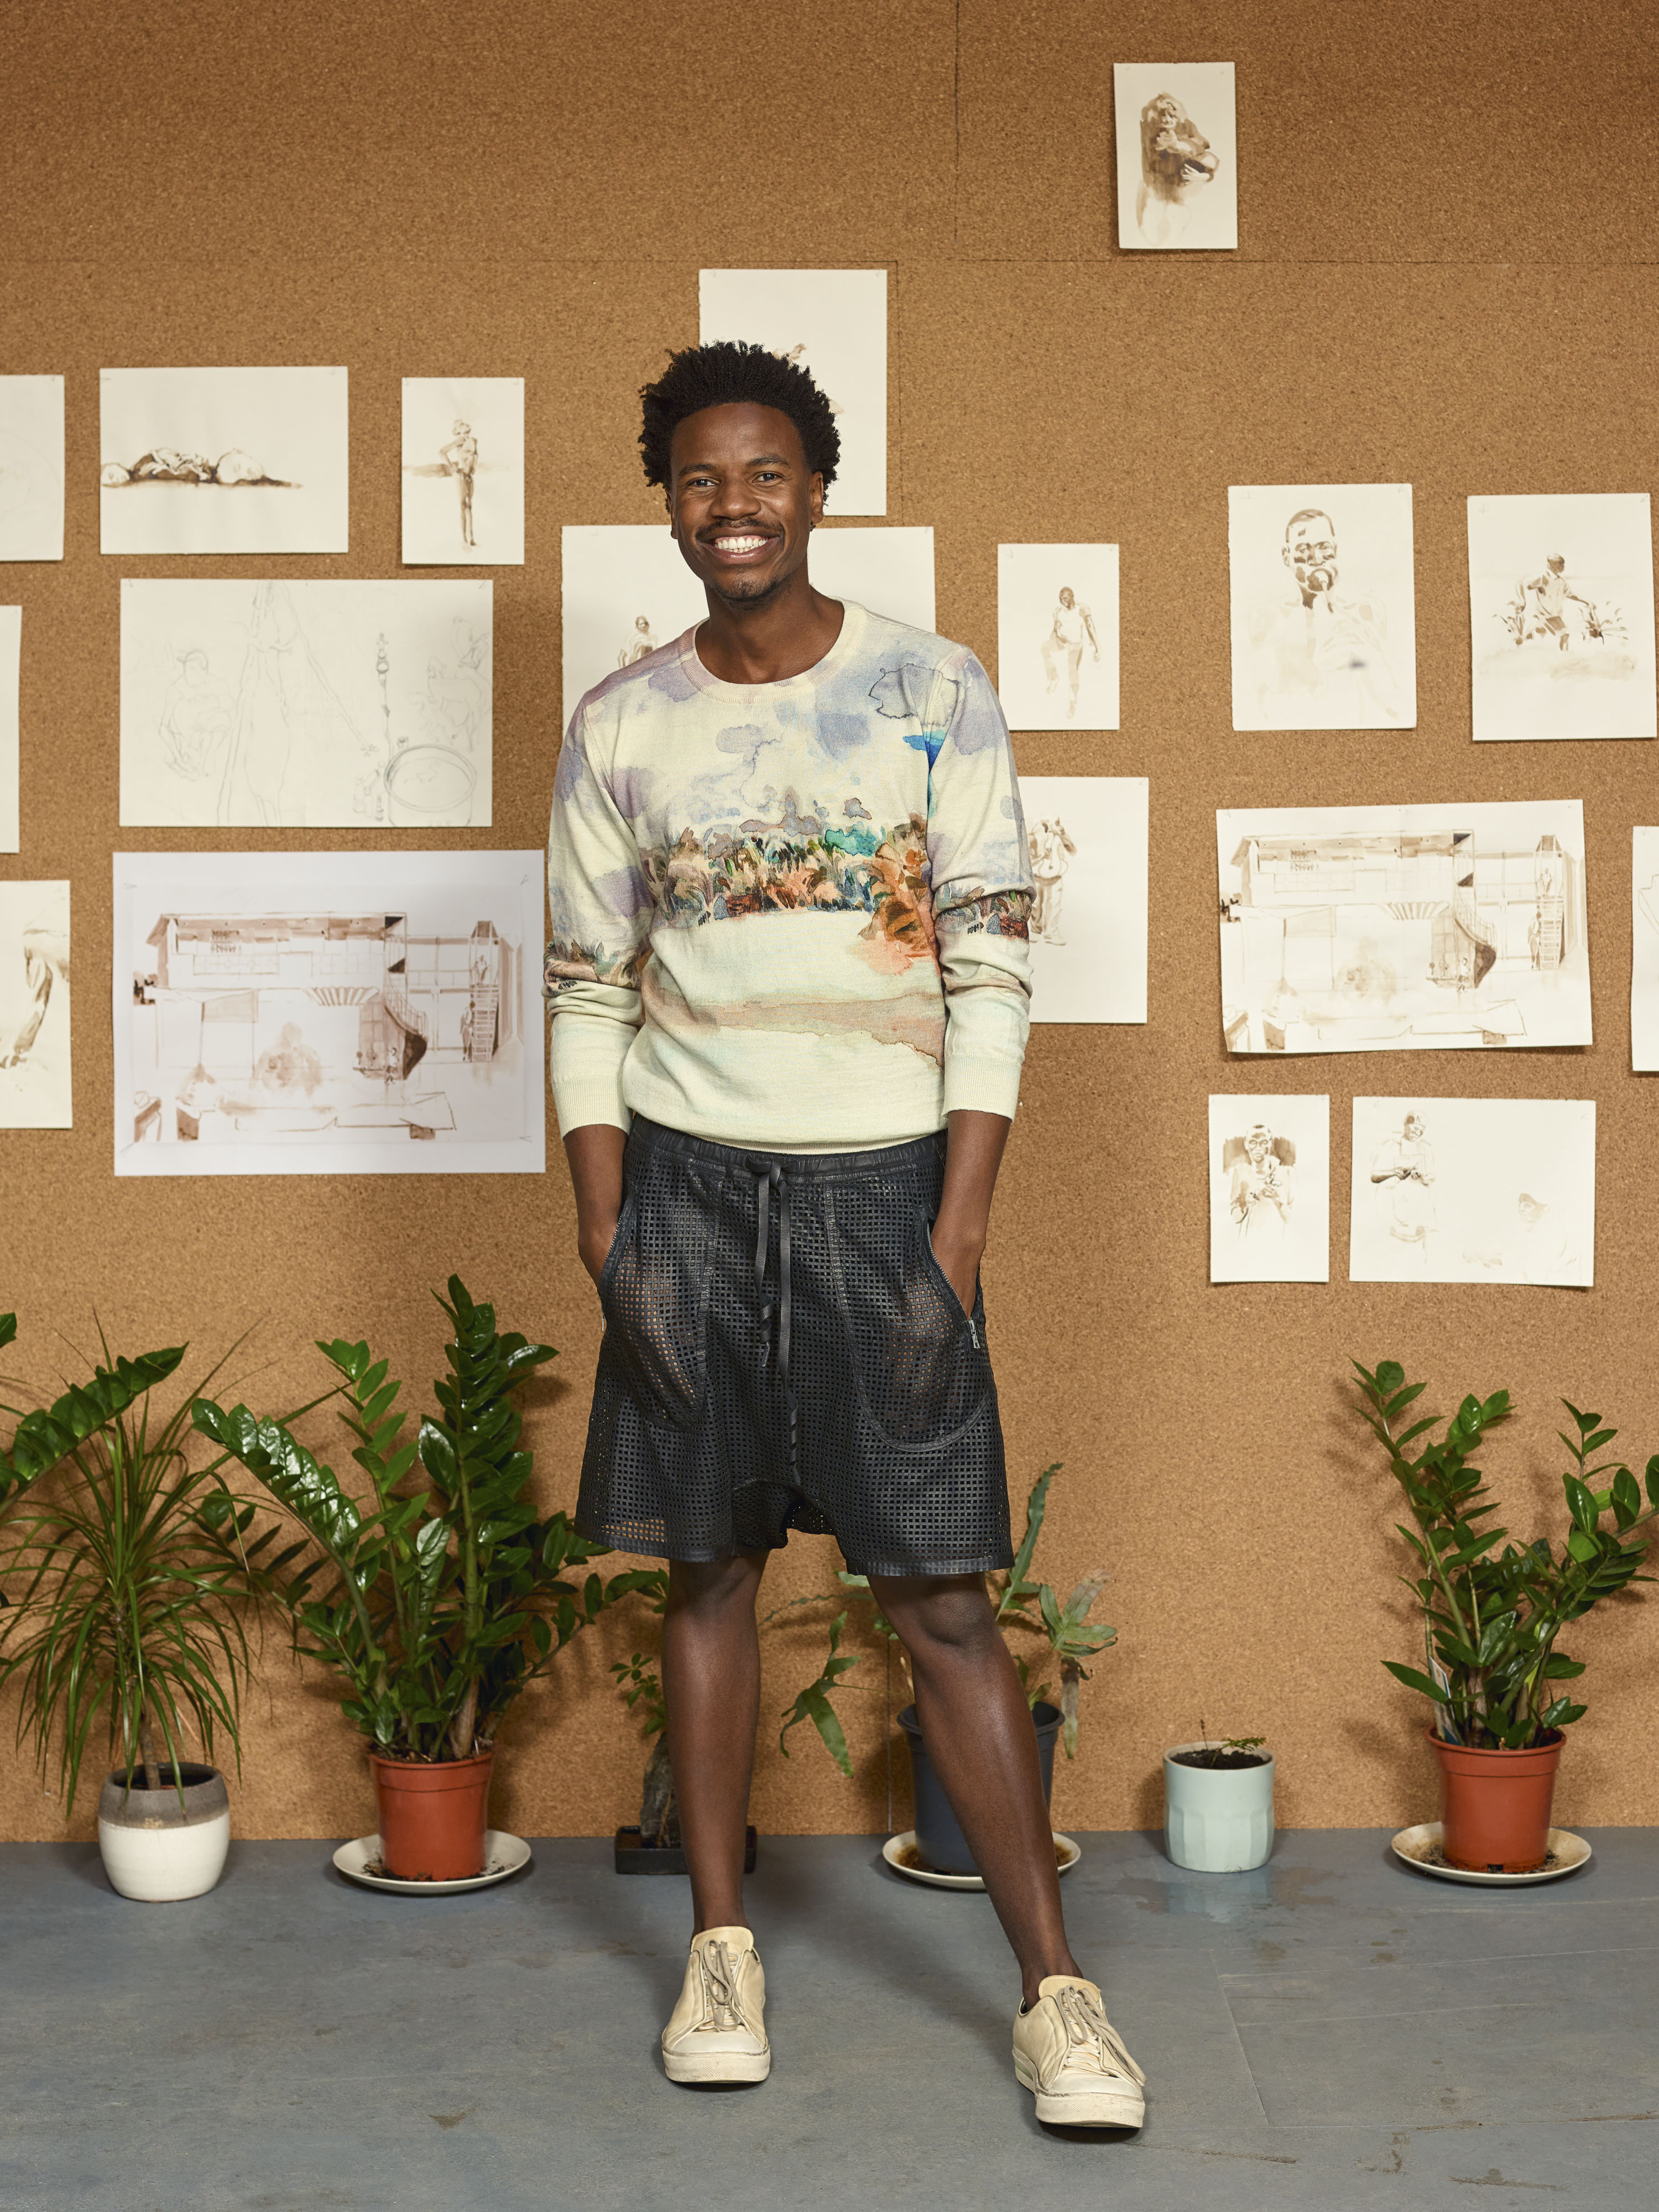 Kiziwani sweater by Stella Jean and Michael Armitage for ArtColLab 2020.